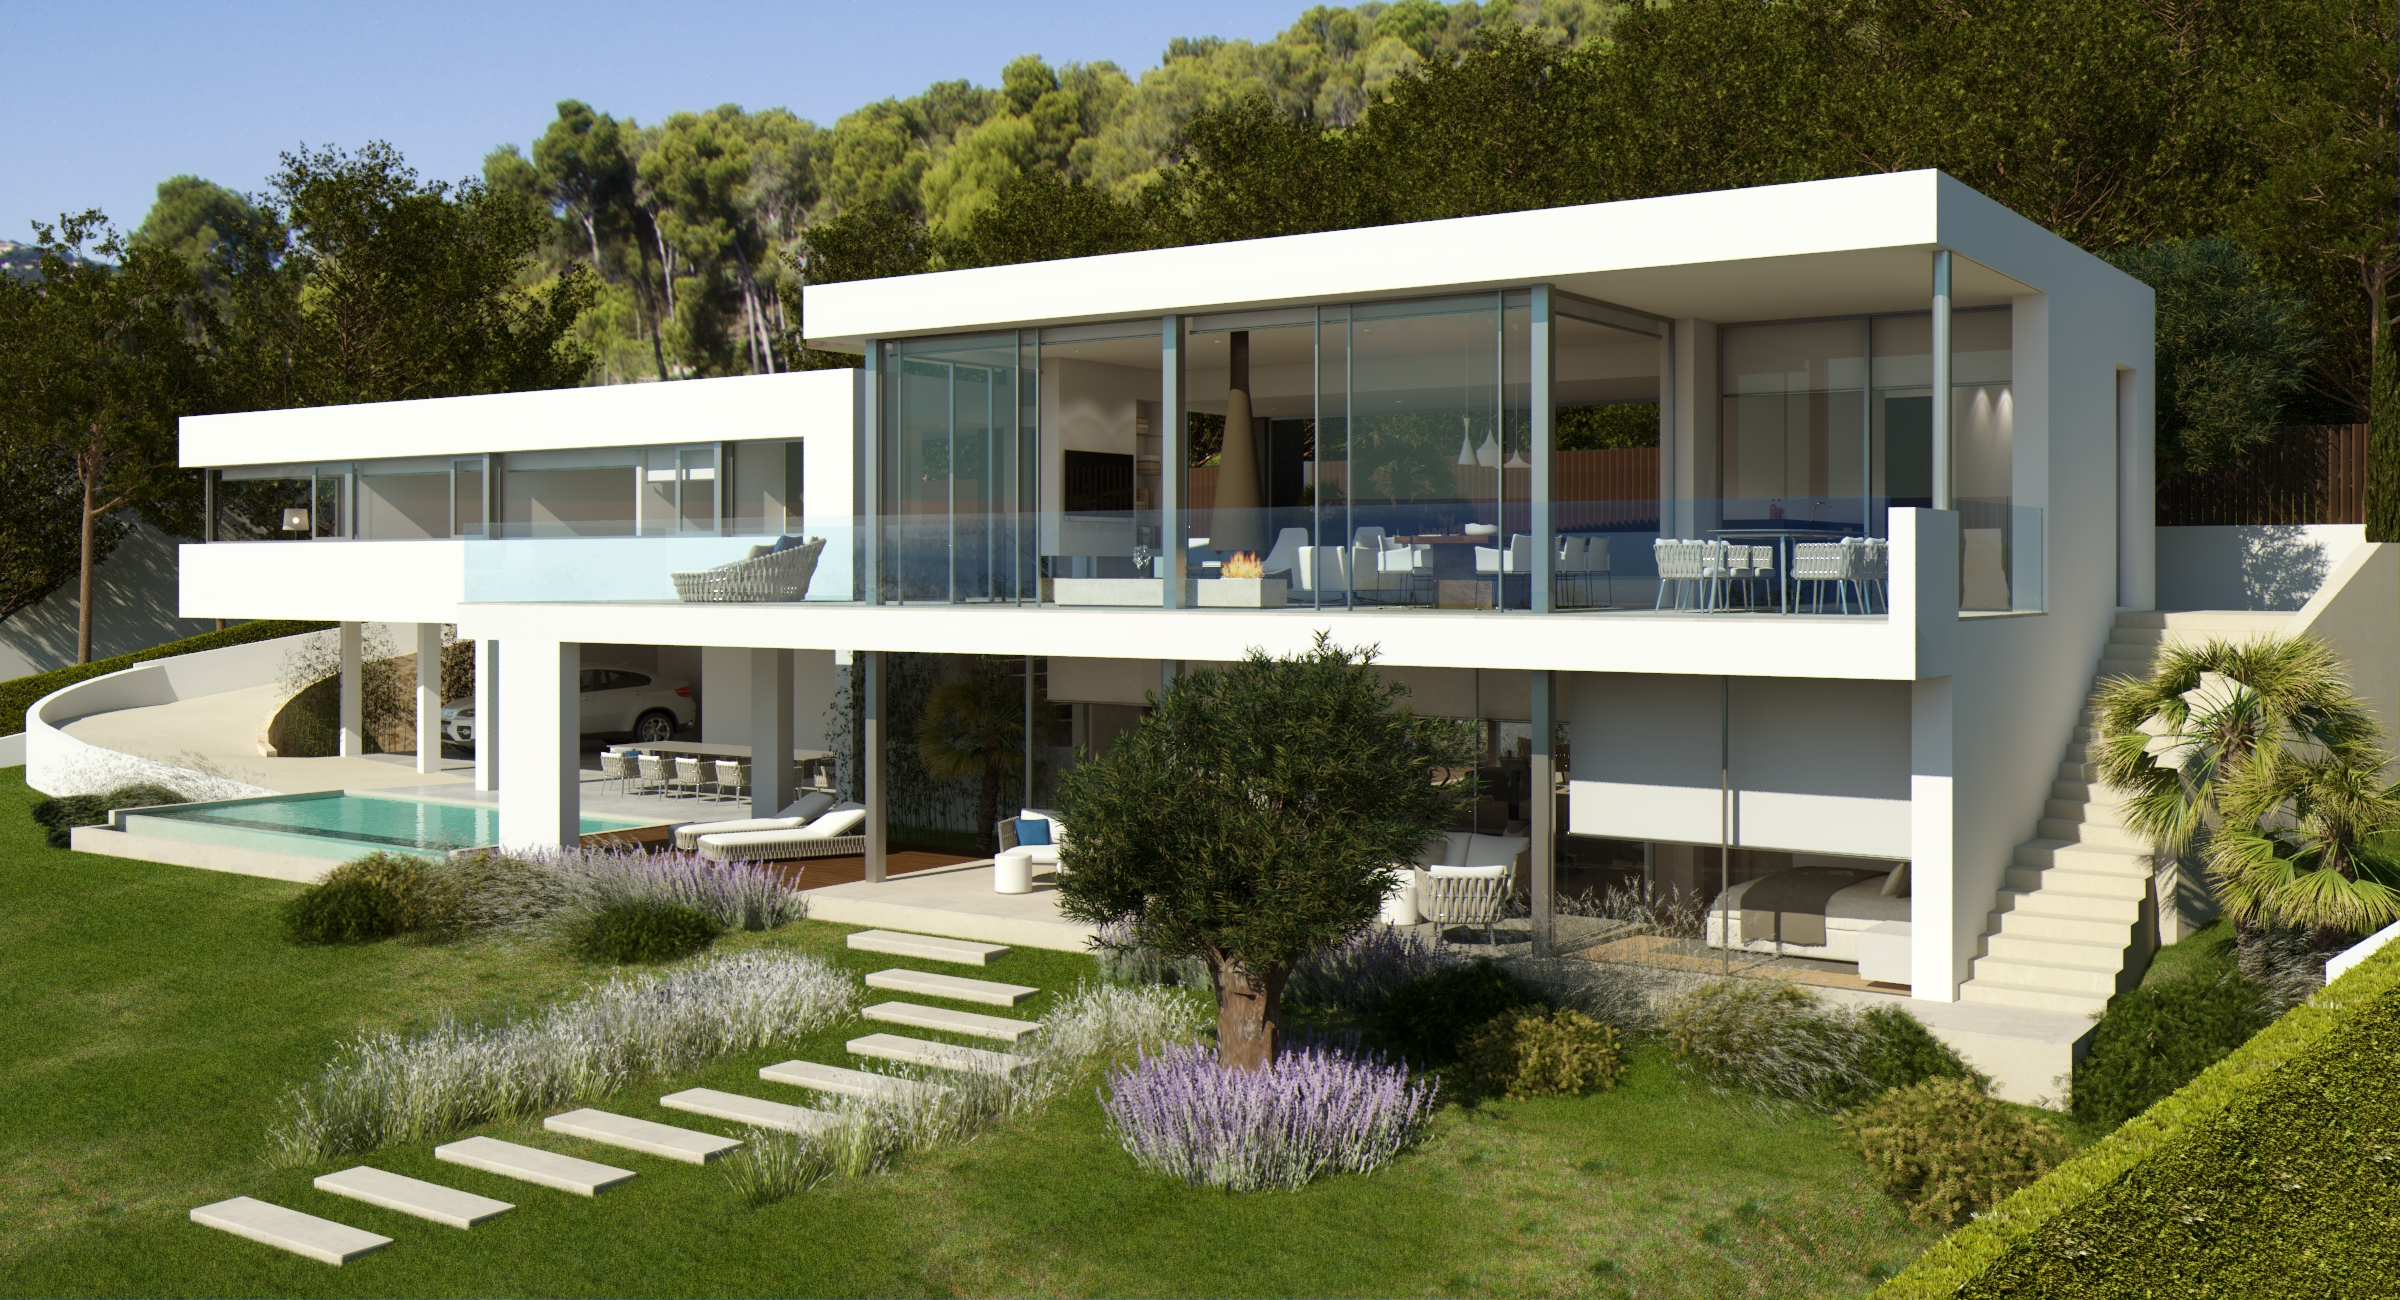 Single Family Home for Sale at Modern designer house 400 m from the beach Playa De Aro, Costa Brava, 17250 Spain